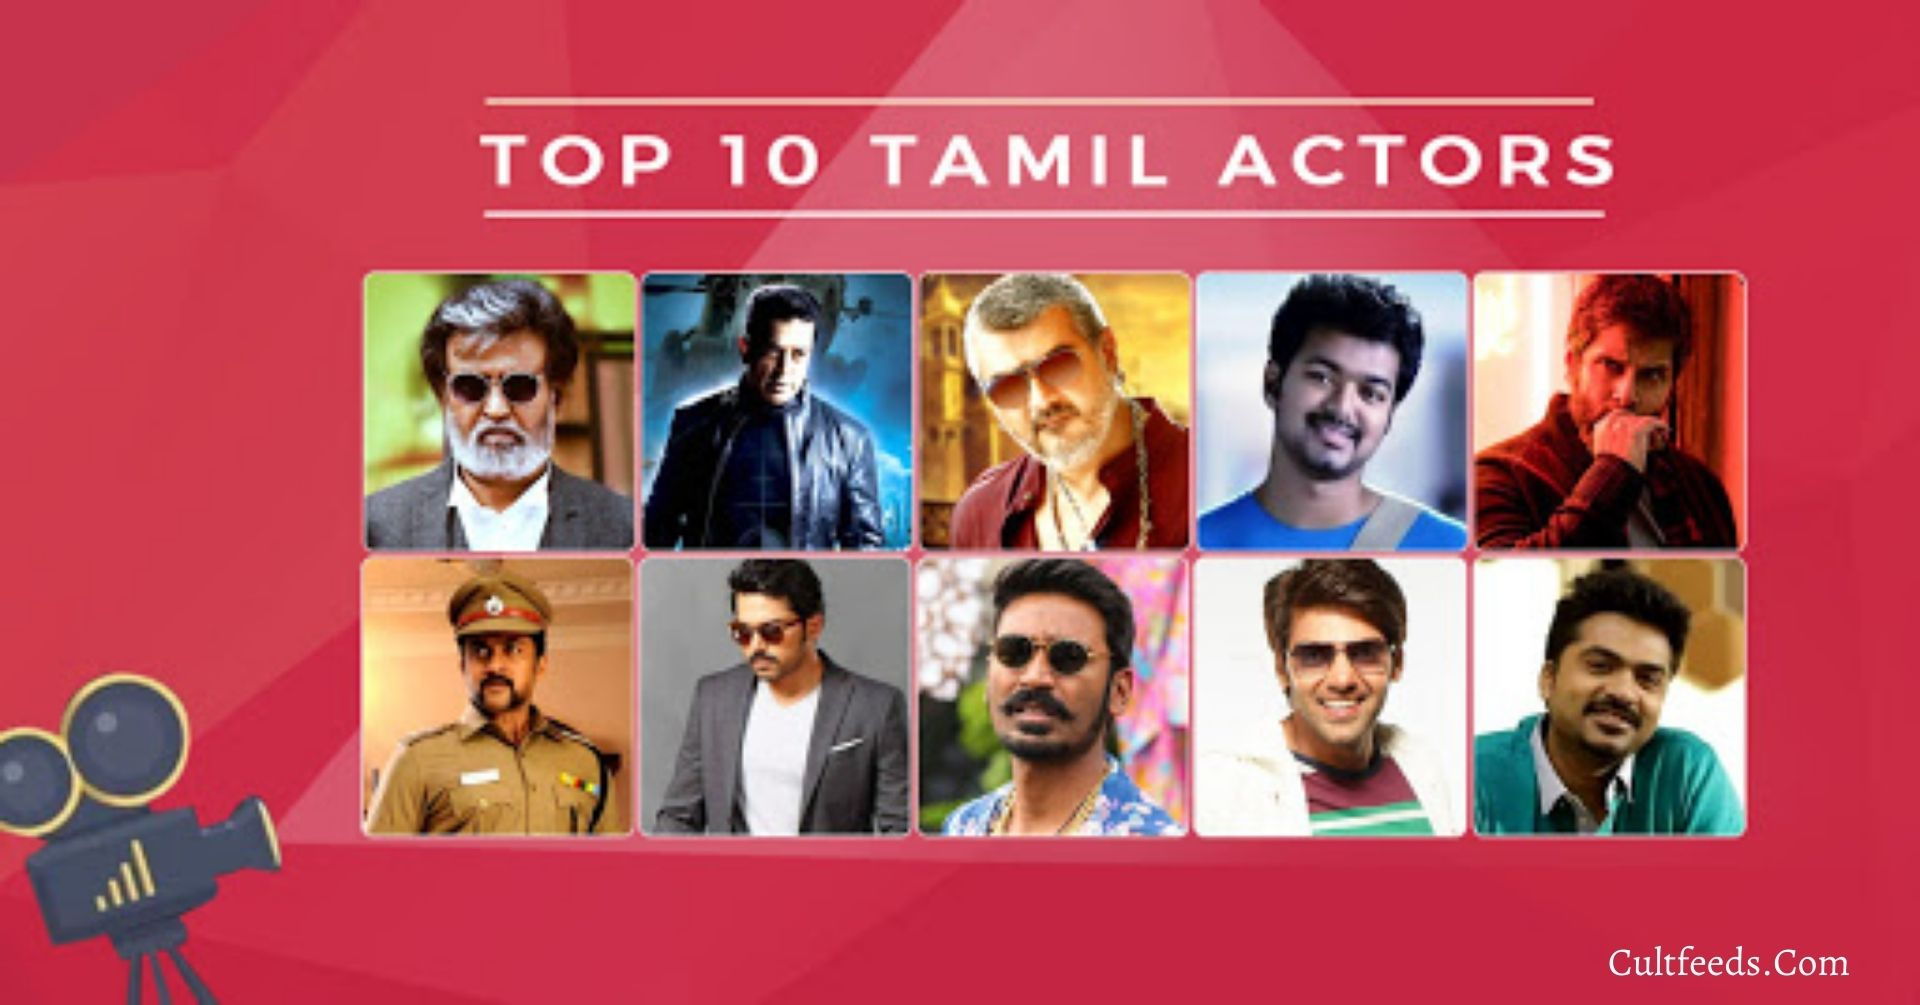 Top 10 Tamil Actors